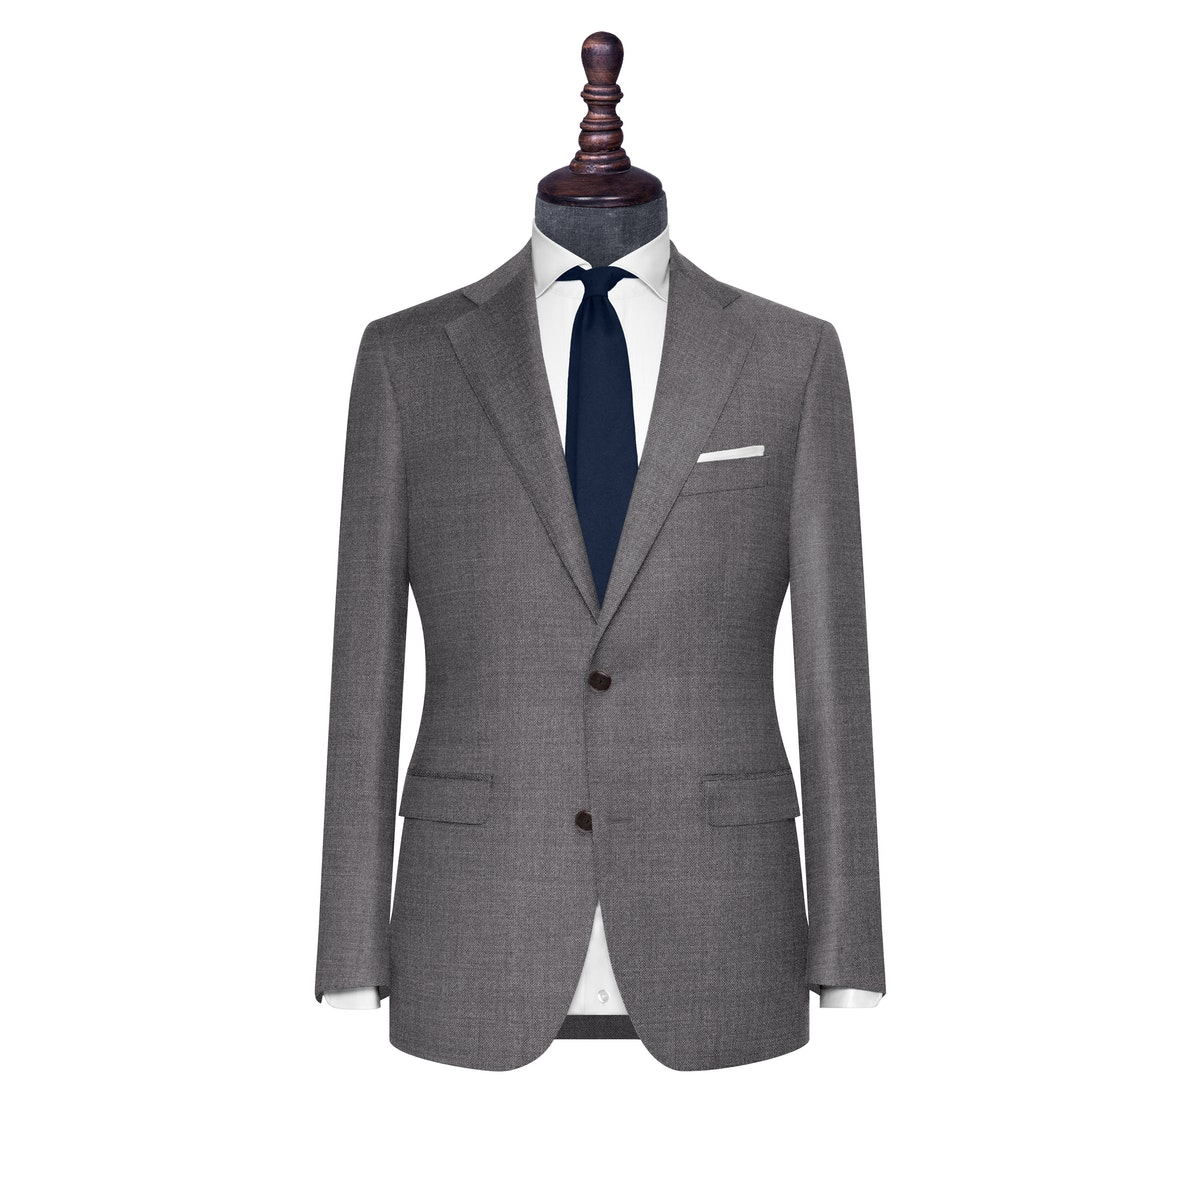 InStitchu Collection The Milan Grey Textured Wool Jacket